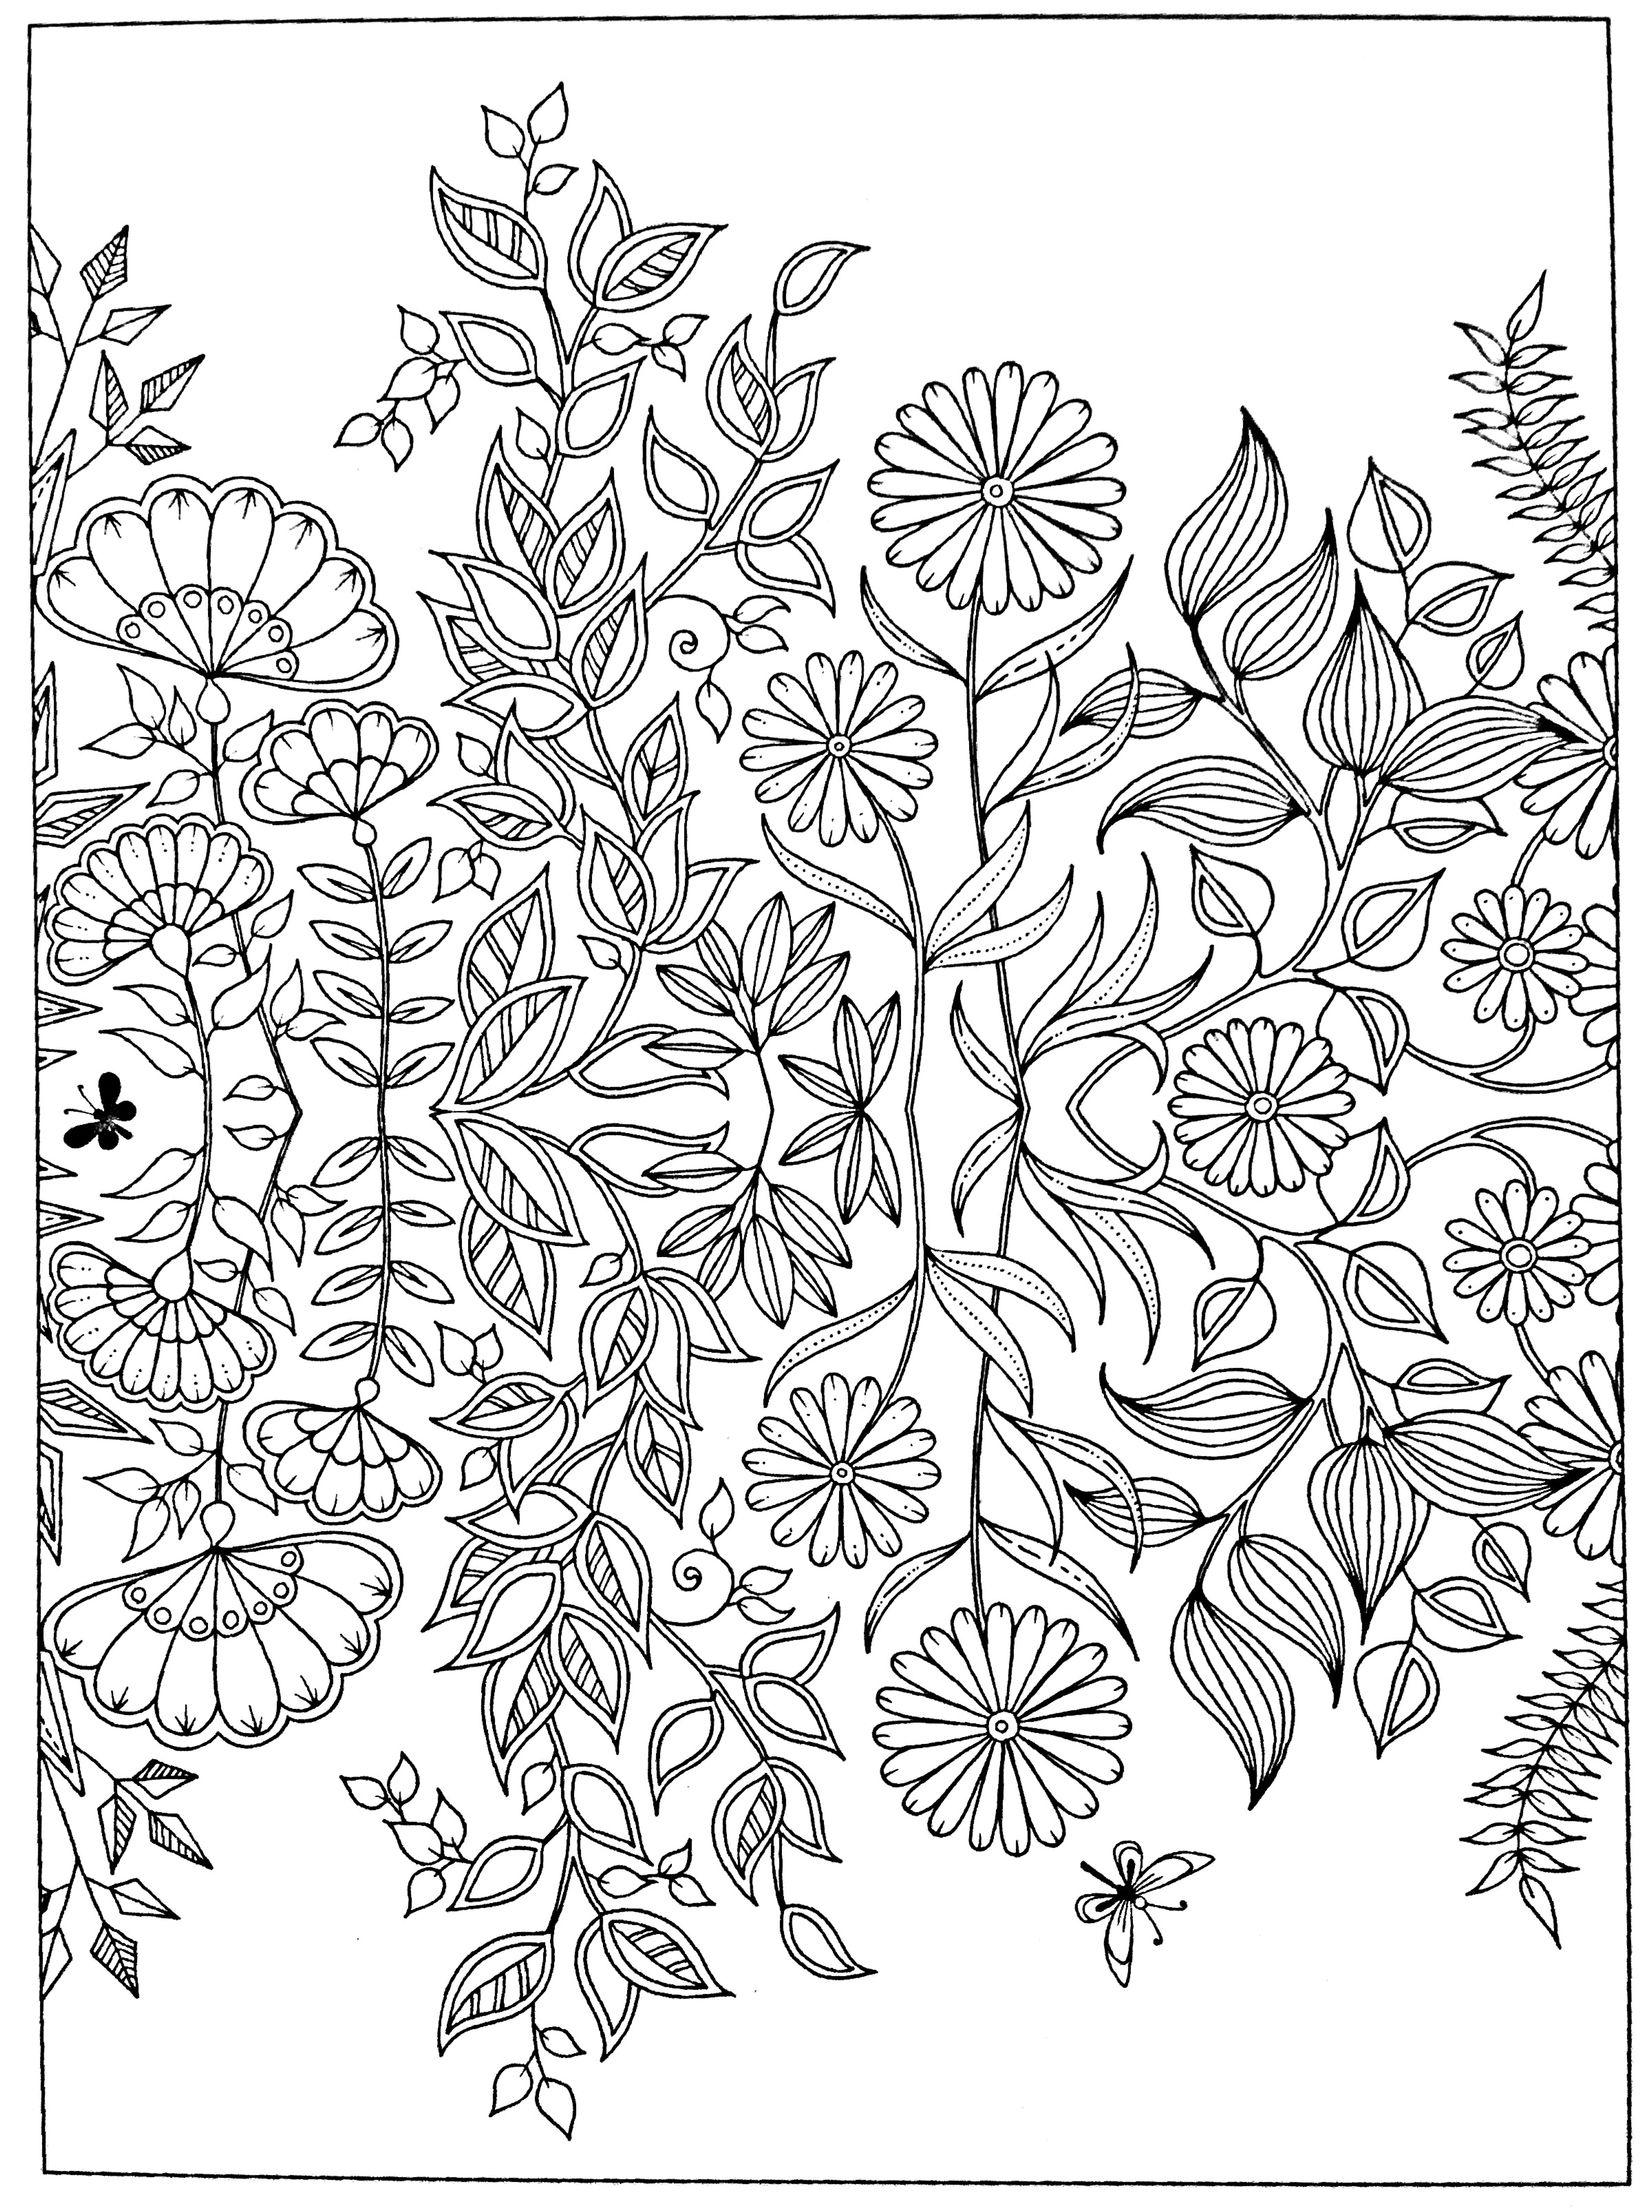 free printable secret garden coloring pages | Free adult coloring page Secret Garden | Mermaid coloring ...